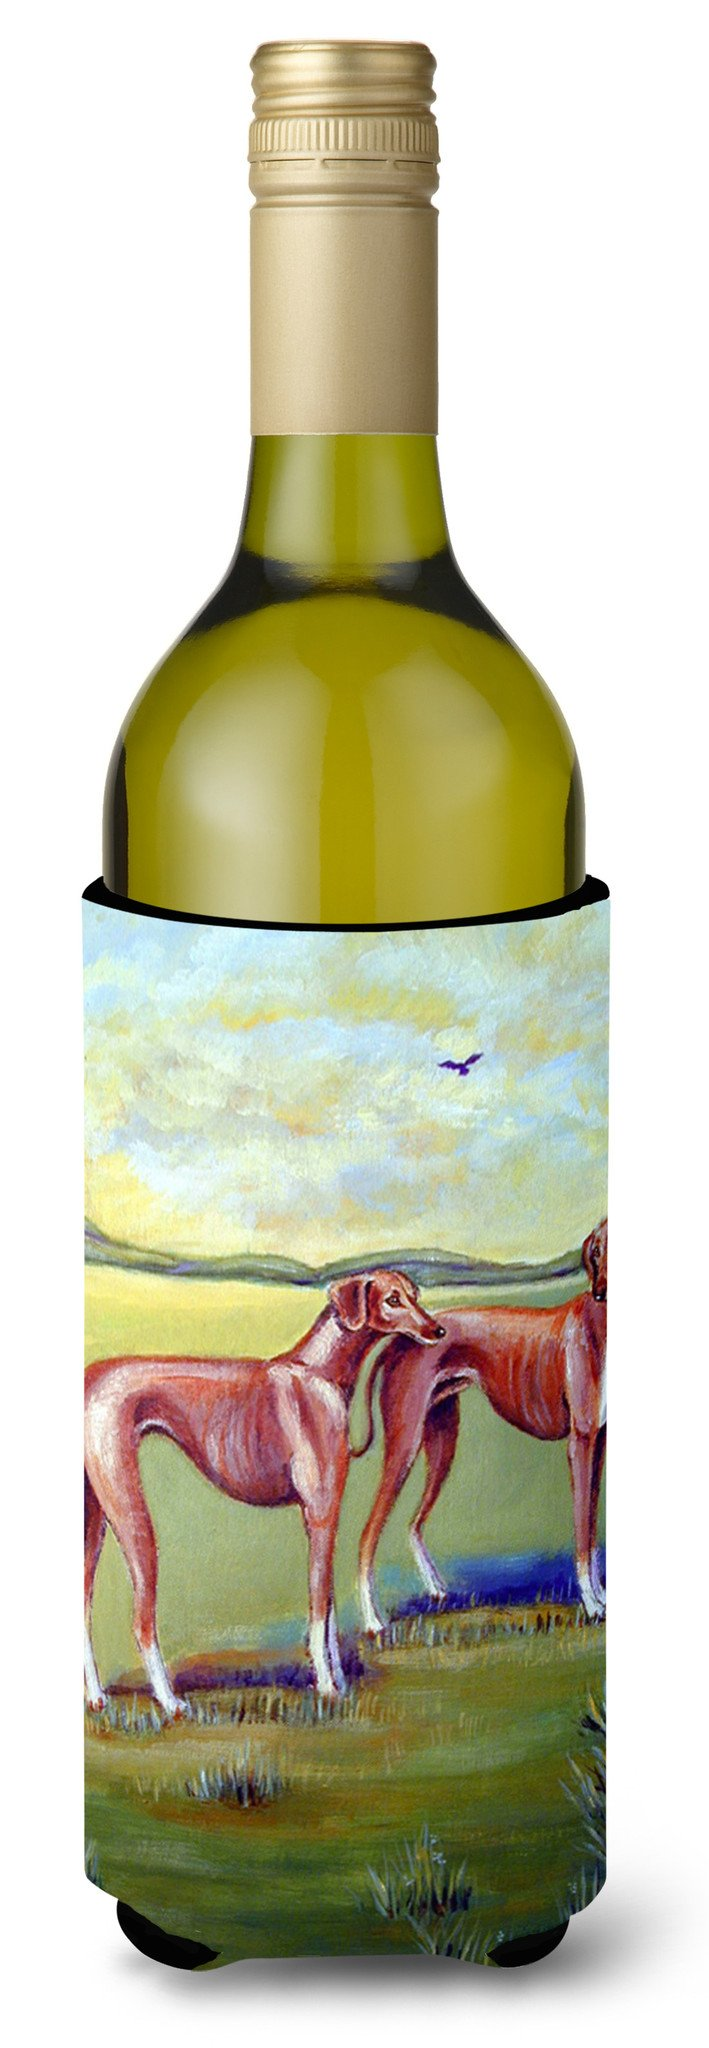 Buy this Azawakh Hound Wine Bottle Beverage Insulator Beverage Insulator Hugger